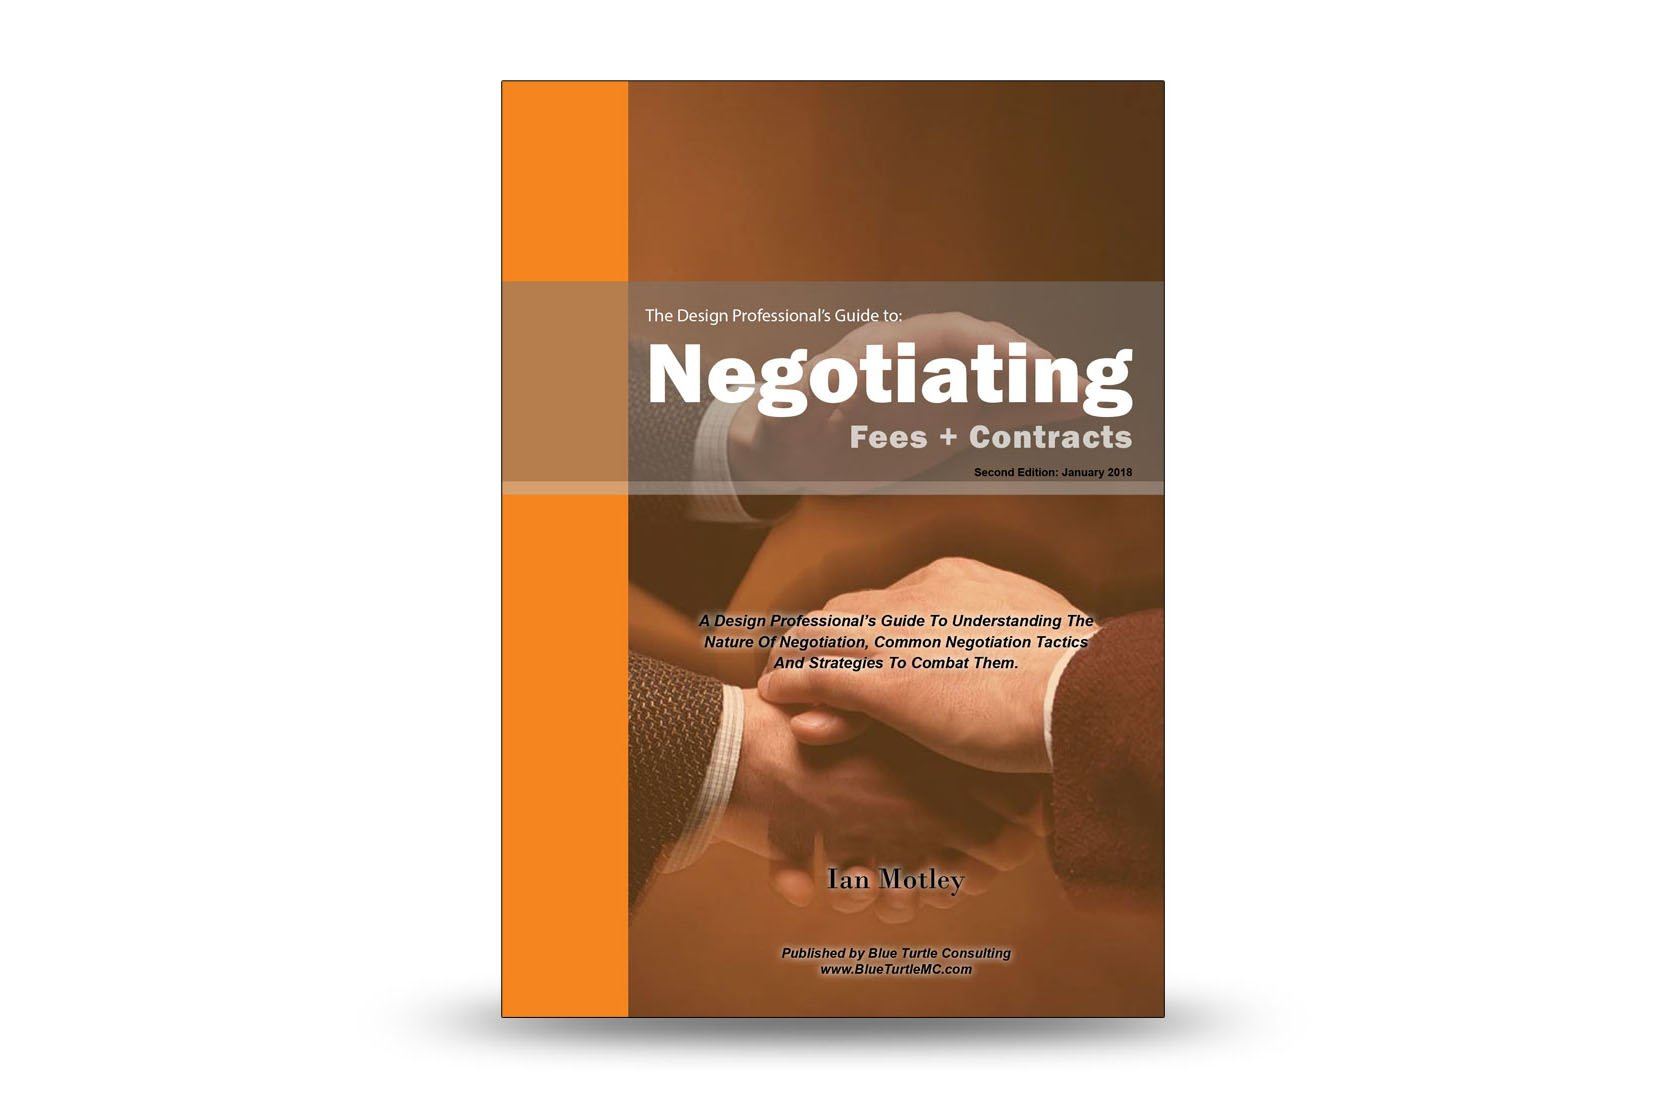 The Design Professional's Guide to Negotiating Fees & Contracts